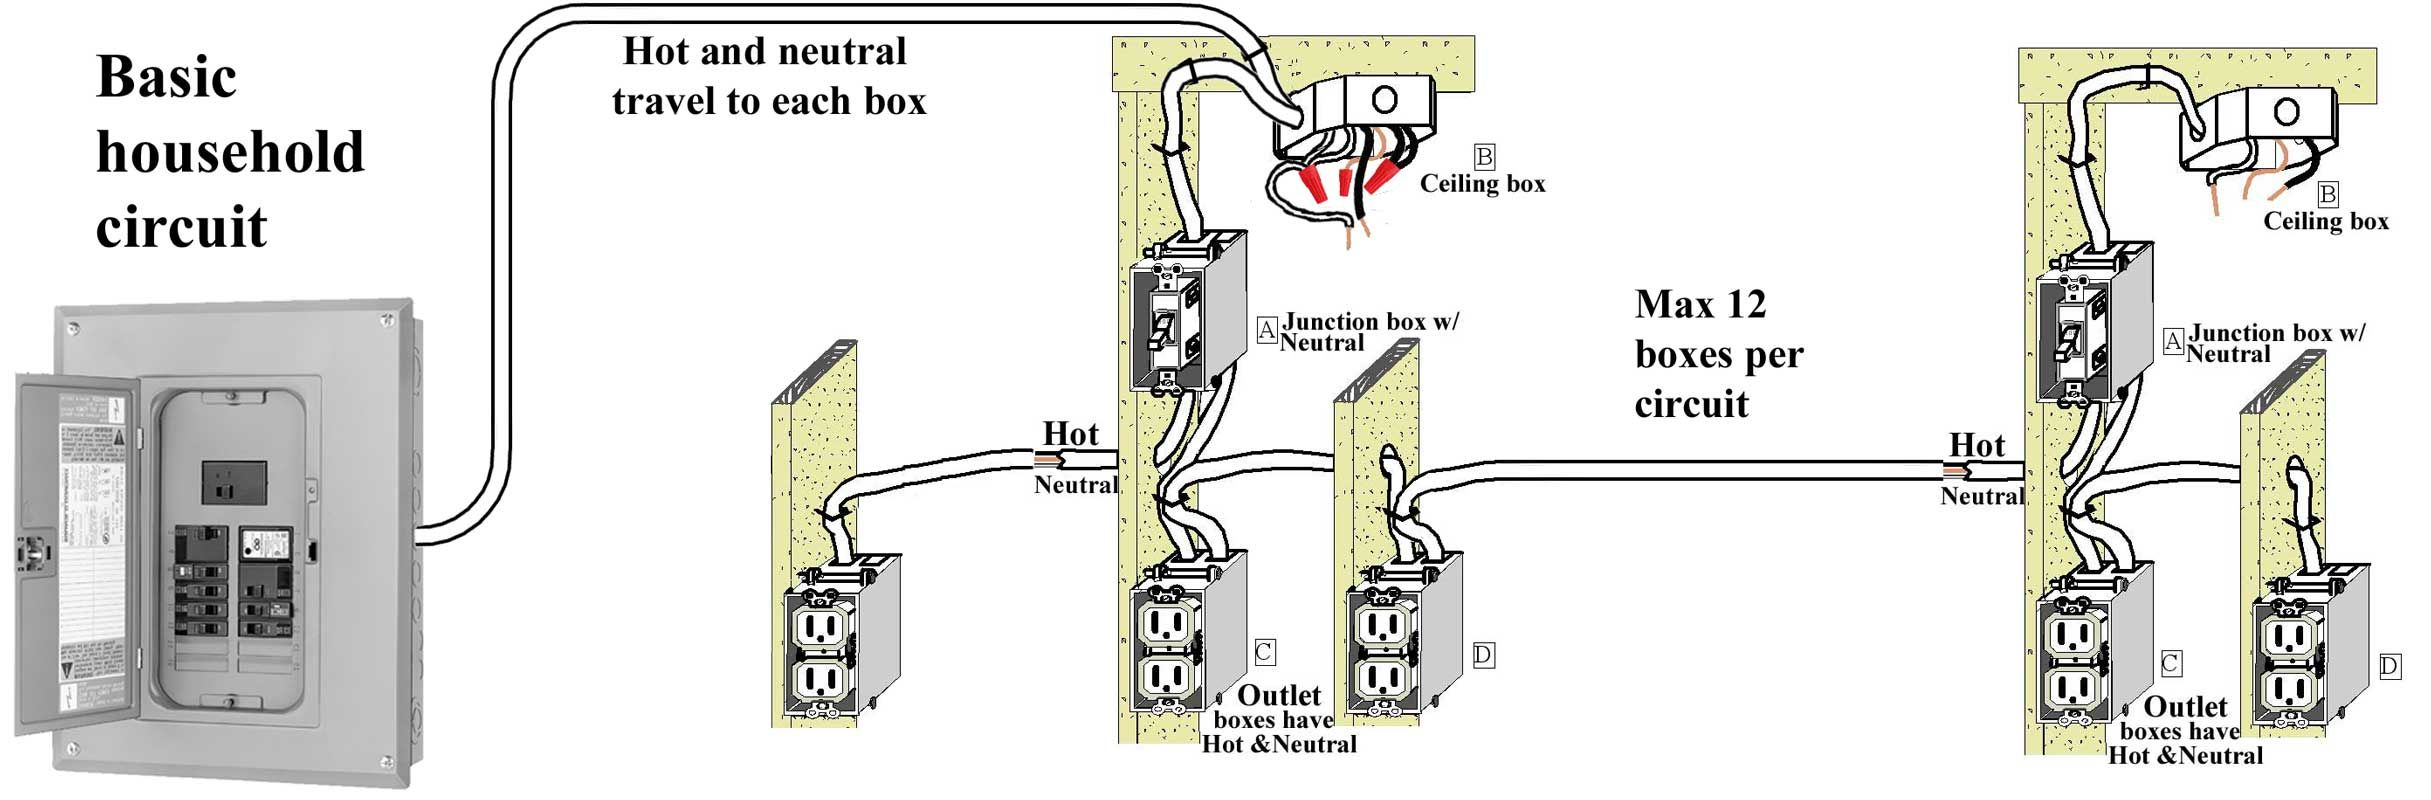 basic home electrical wiring diagram